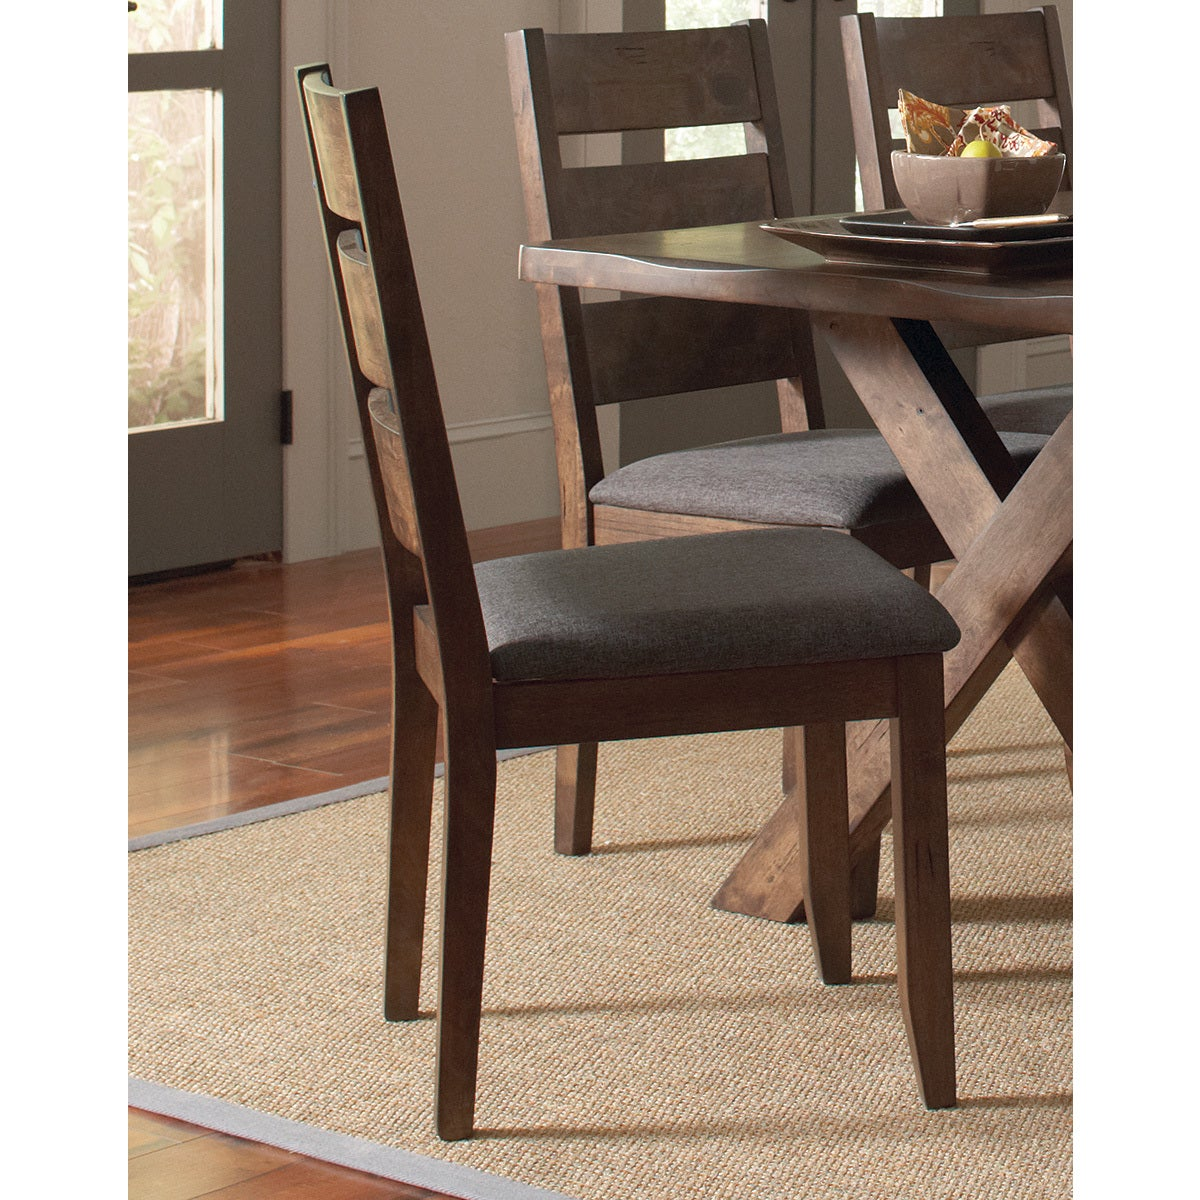 Peachy Coaster Company Brown Wood Dining Chair Set Of 2 20 X 22 75 X 38 Cjindustries Chair Design For Home Cjindustriesco